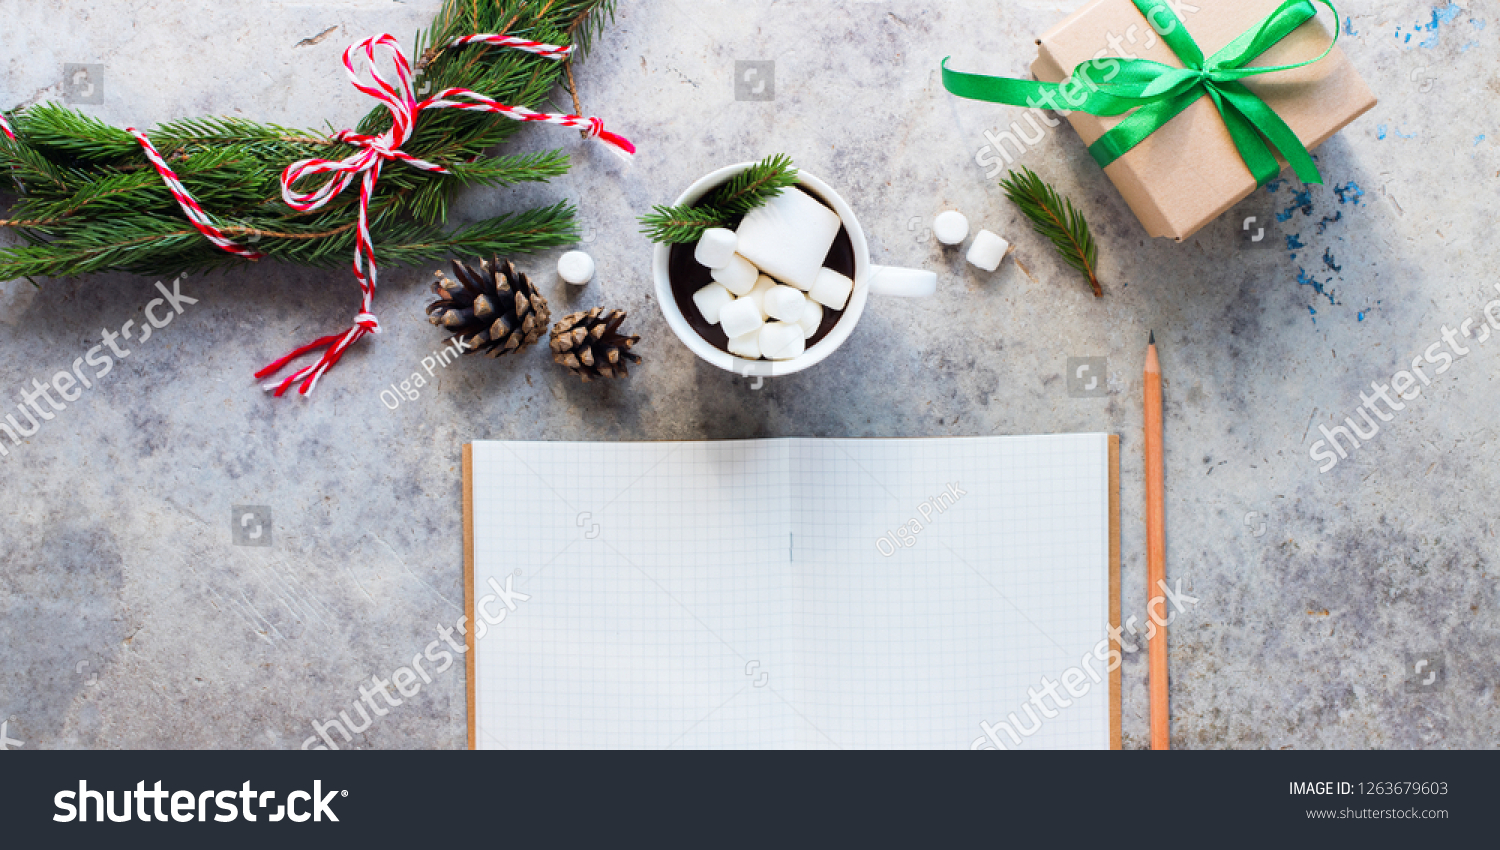 2019 Year Christmas Objects Chocolate Marshmallow Stock Photo Edit